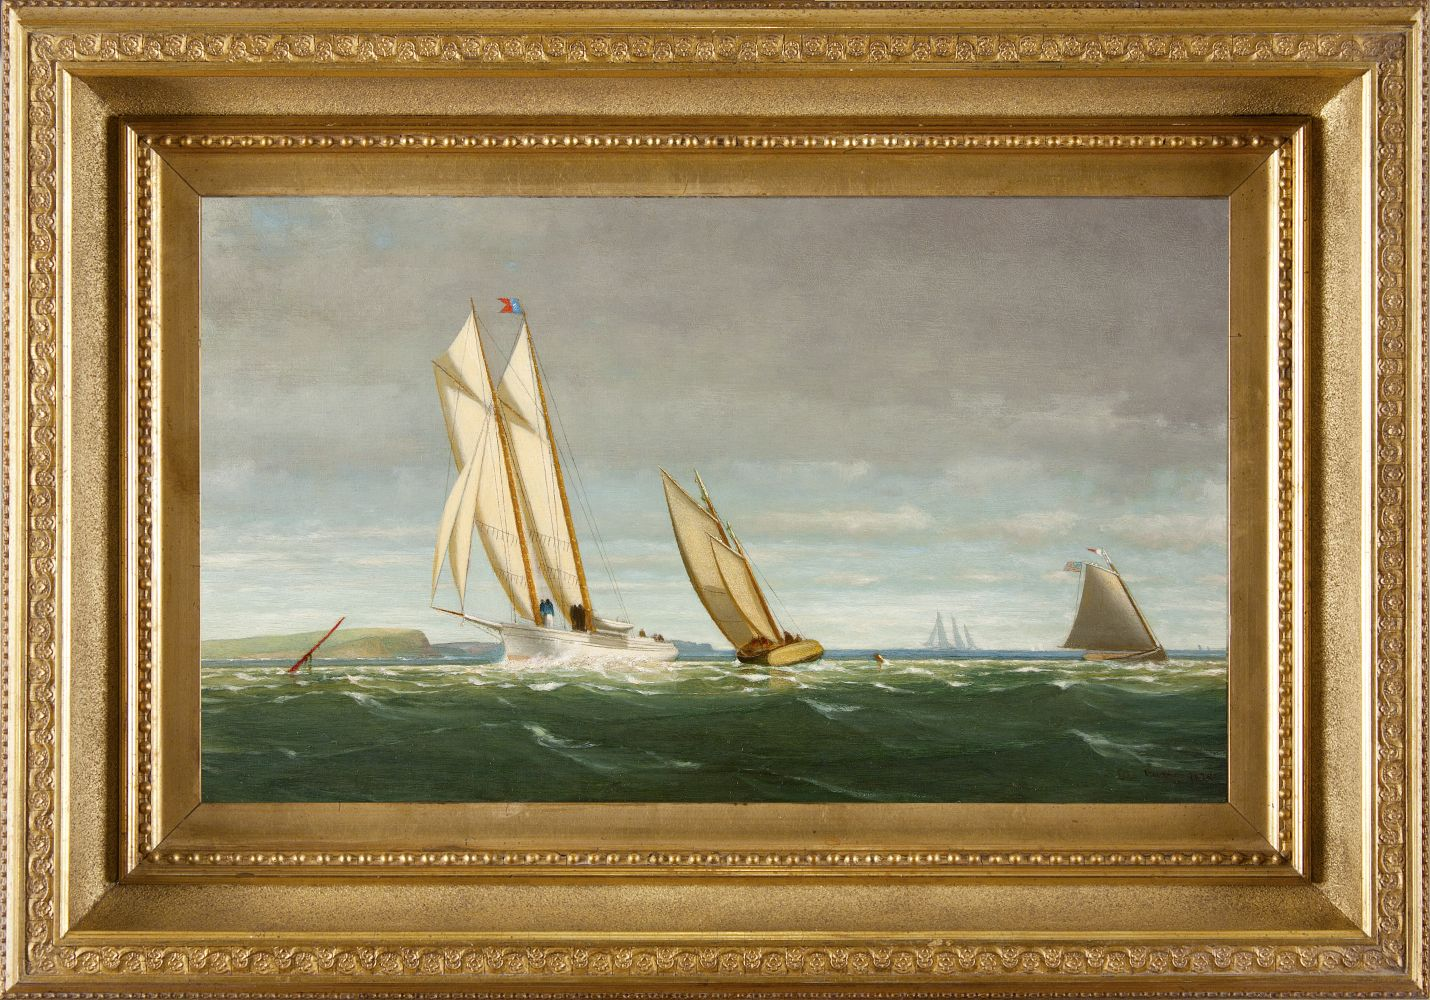 George Curtis (1816–1881), Sailing off the Coast, 1878, oil on panel, 11 ½ x 20 in., signed and dated lower right: Geo. Curtis 1878 (framed)